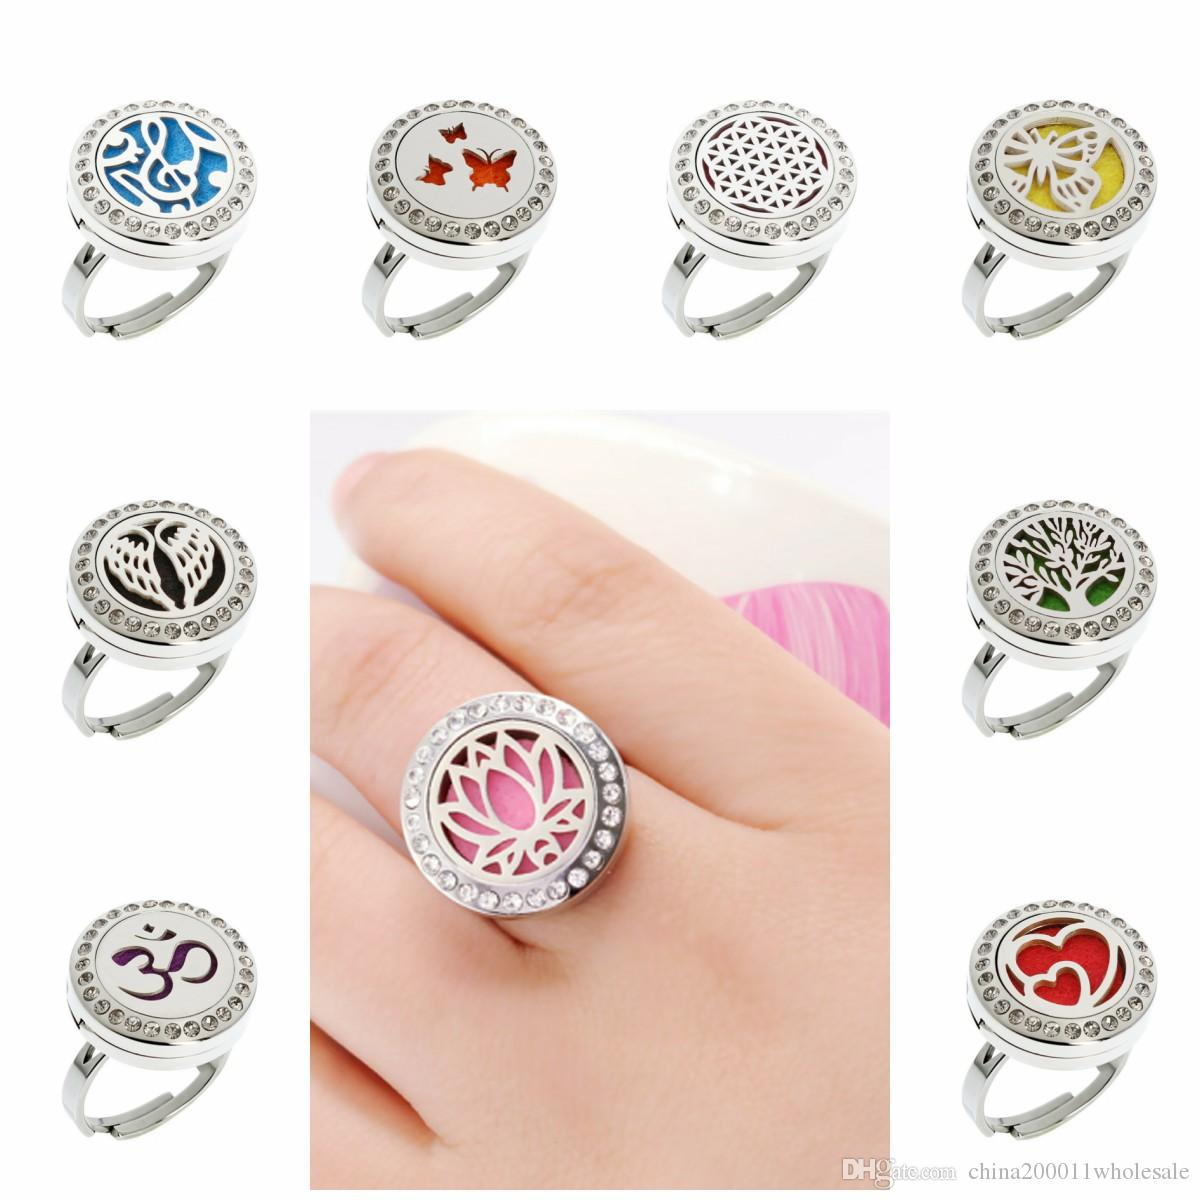 Lotus Flower Wing Crystal Adjustable Rings 20mm Stainless Steel Diffuser Locket Ring Essential Oil Perfume Locket Ring With 10pcs Pads